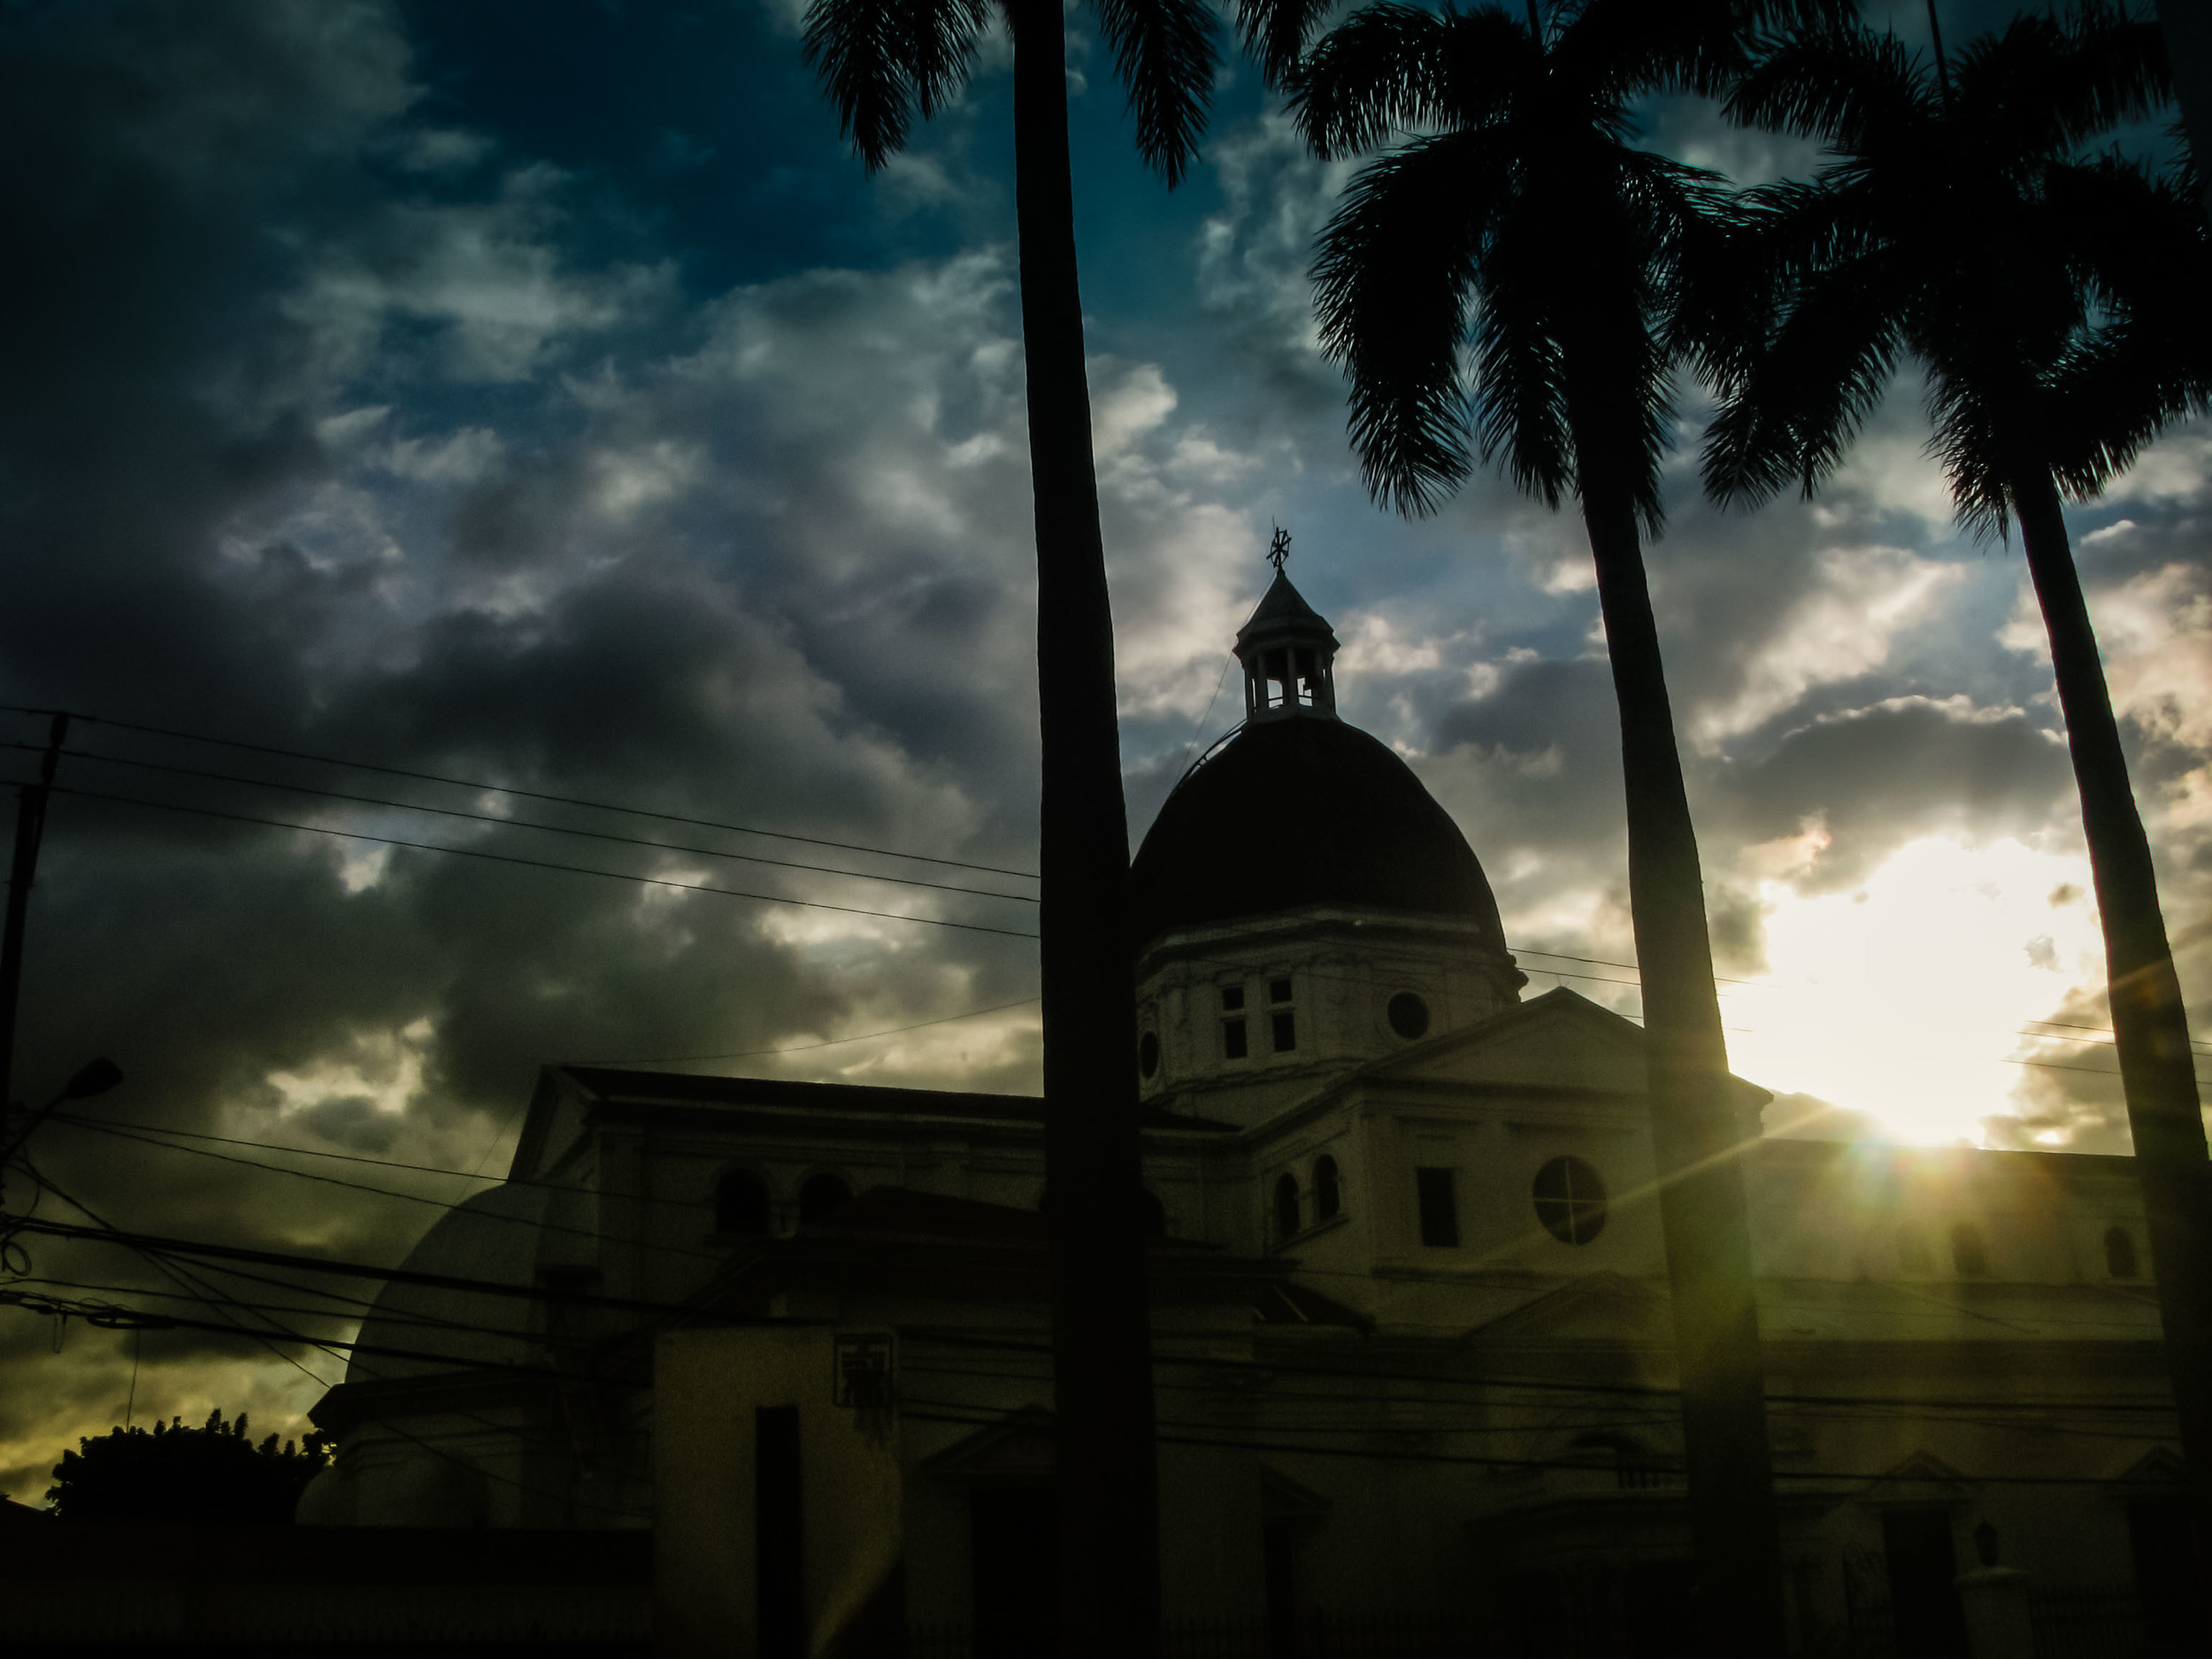 #sanjose #costarica #centralamerica #travel #sunset